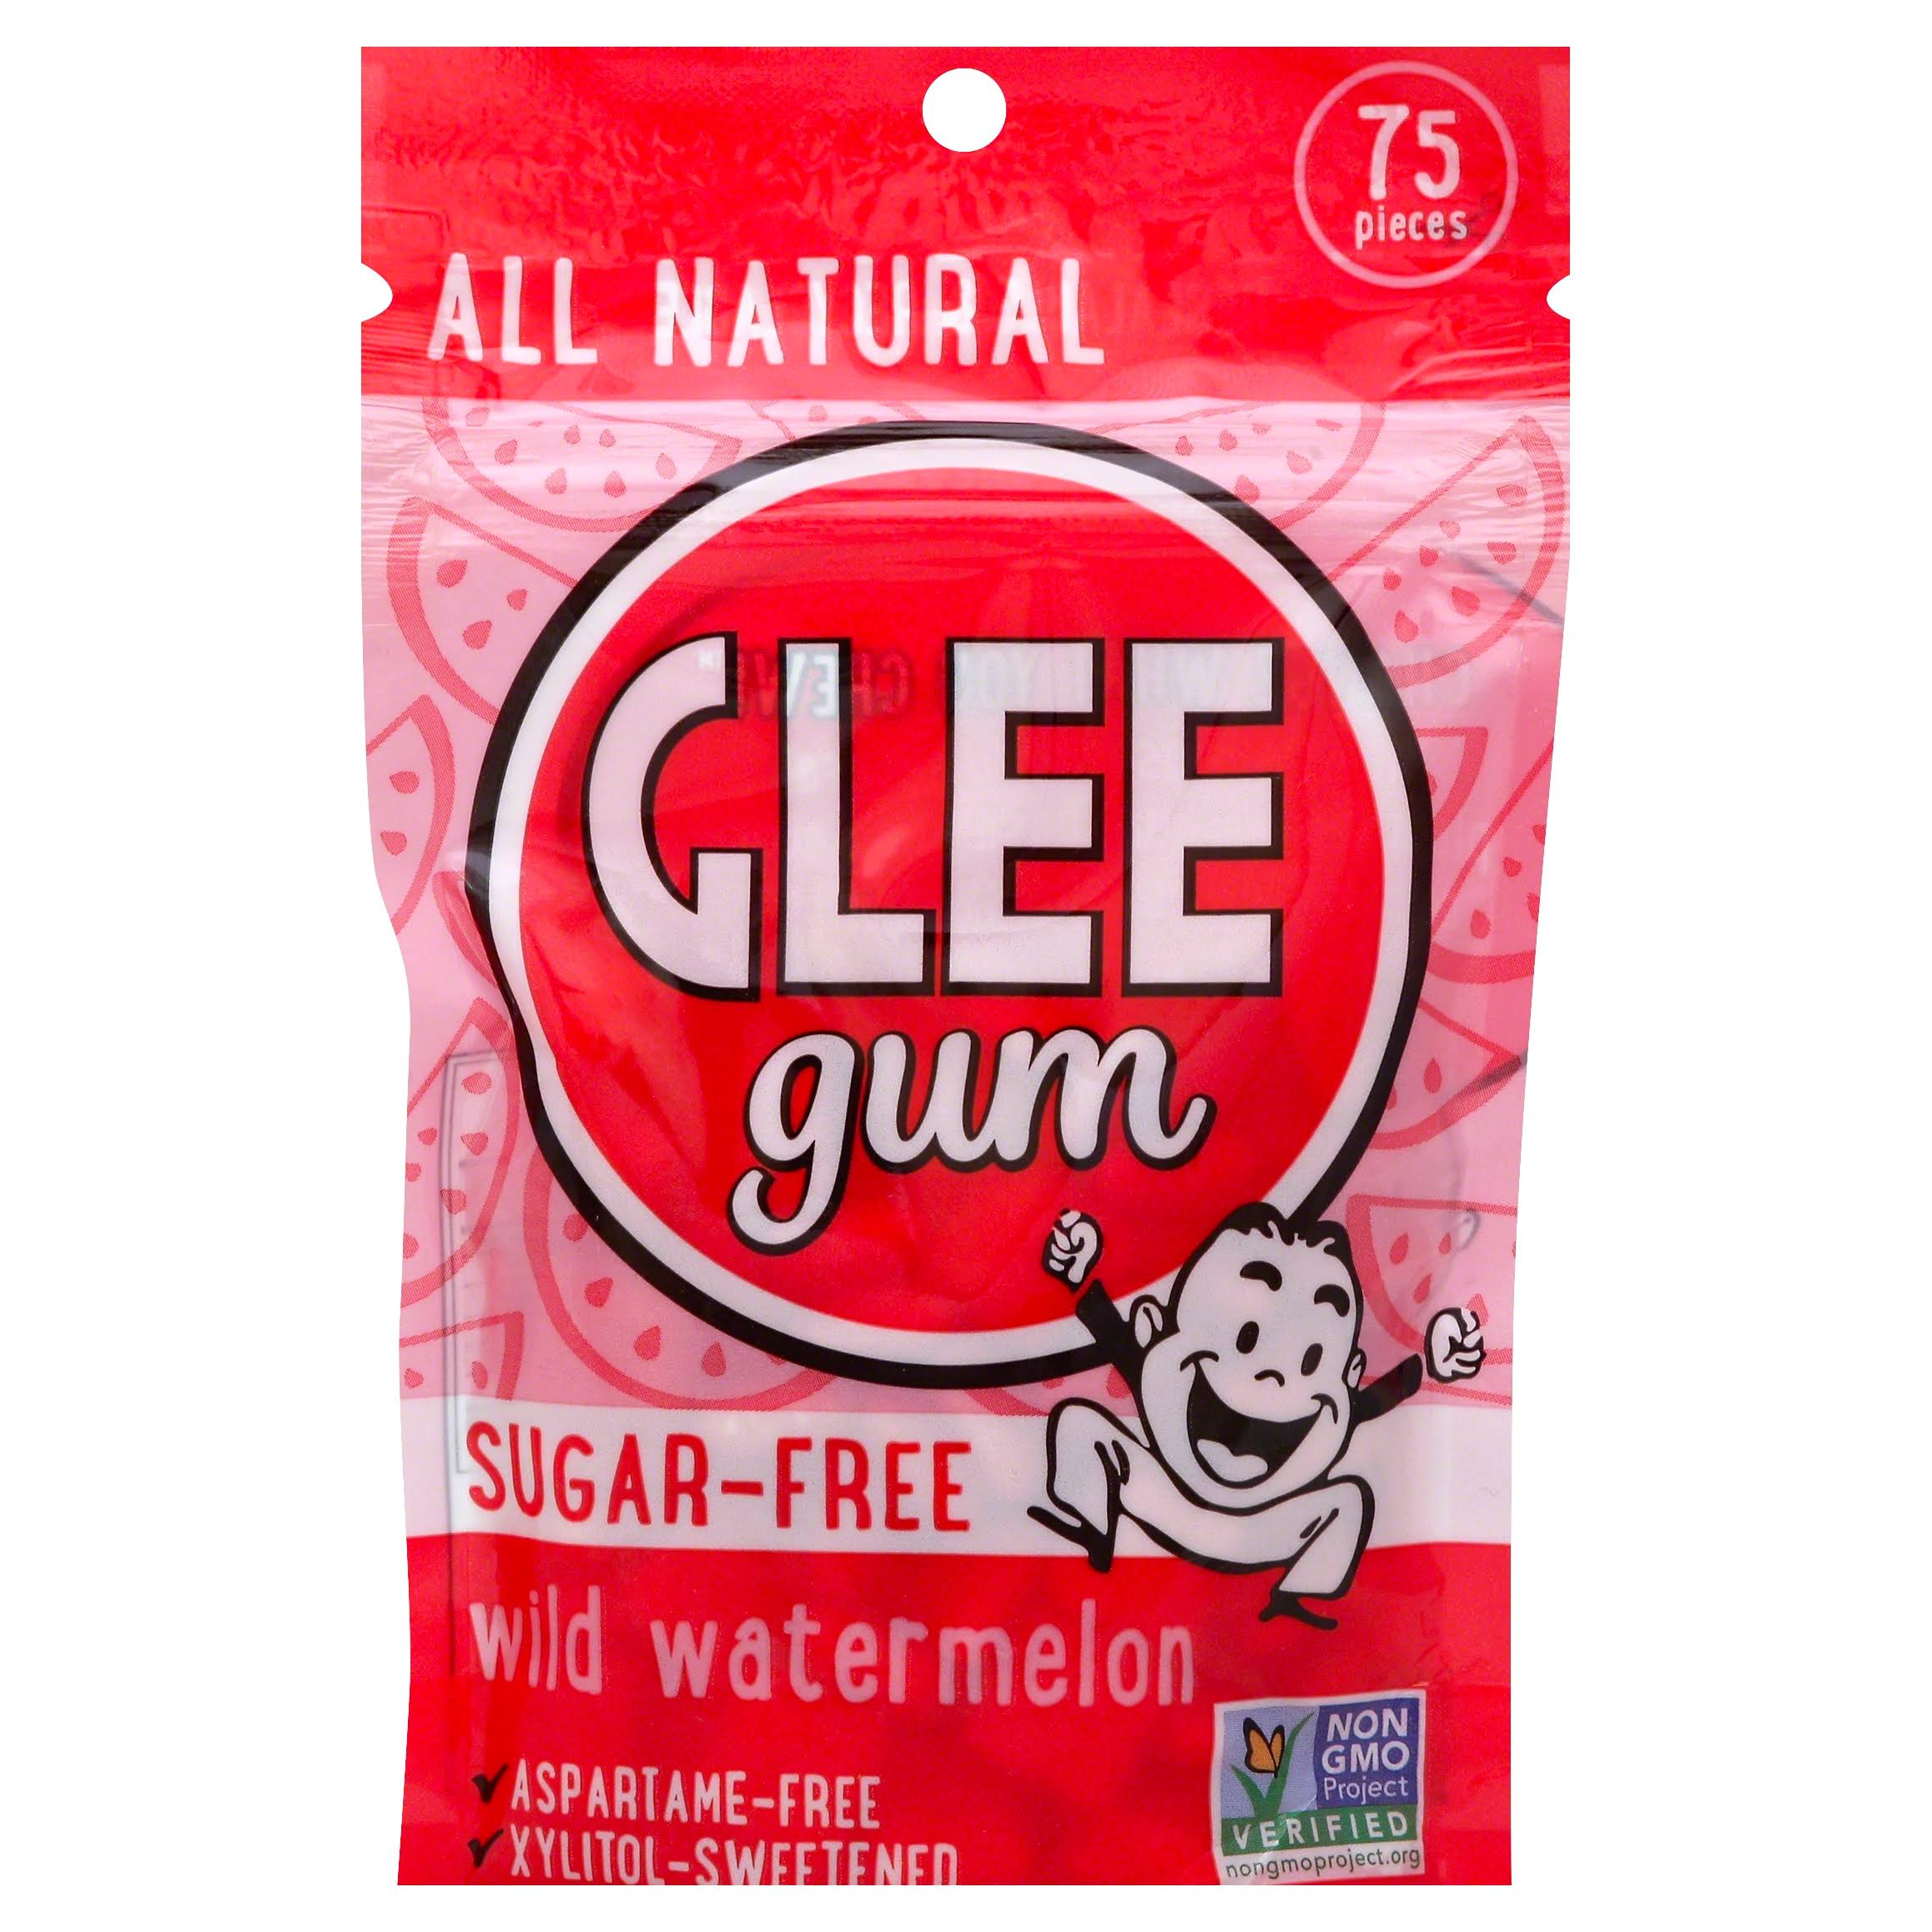 Glee Gum Natural Xylitol-Sweetened - Wild Watermelon